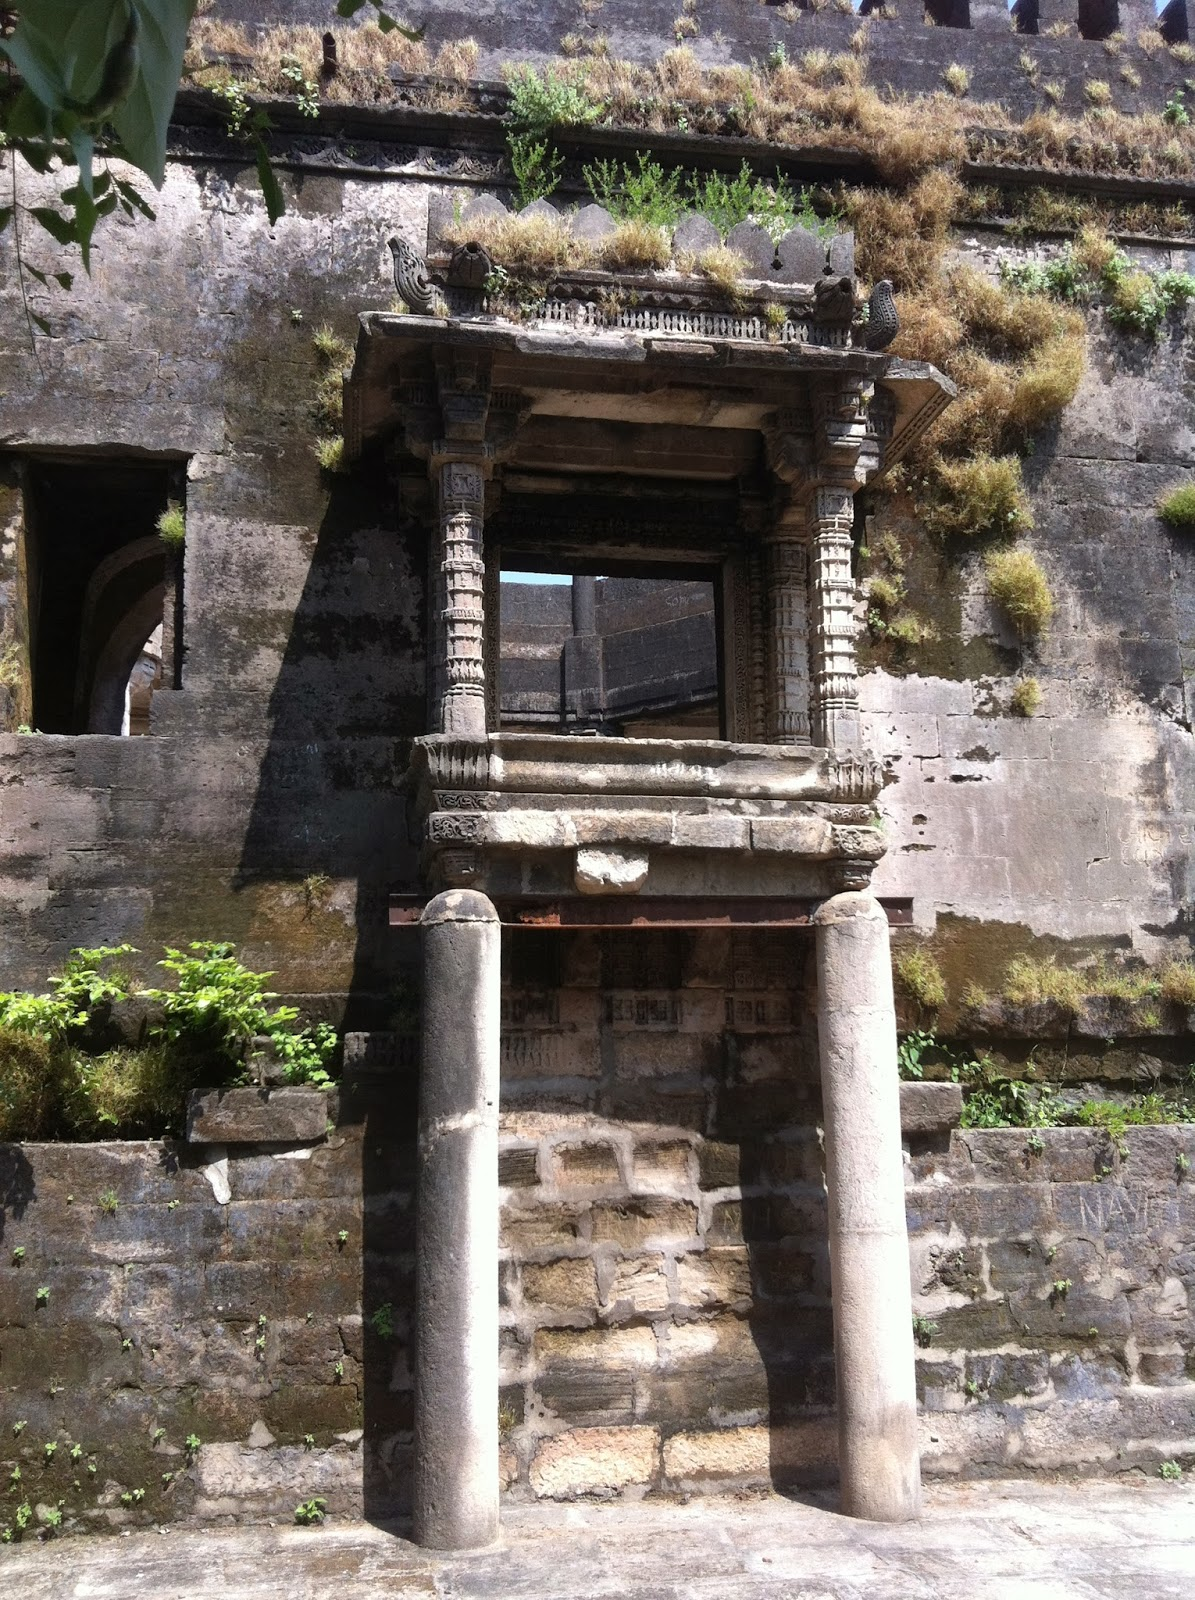 The spooky uparkot fort junagadh gujarat - Come With Us Back To 1 500 Bc Sound Fx And Swirling Screen Etc To The Ancient Fort At Uparkot In Junagarh Garh Fort